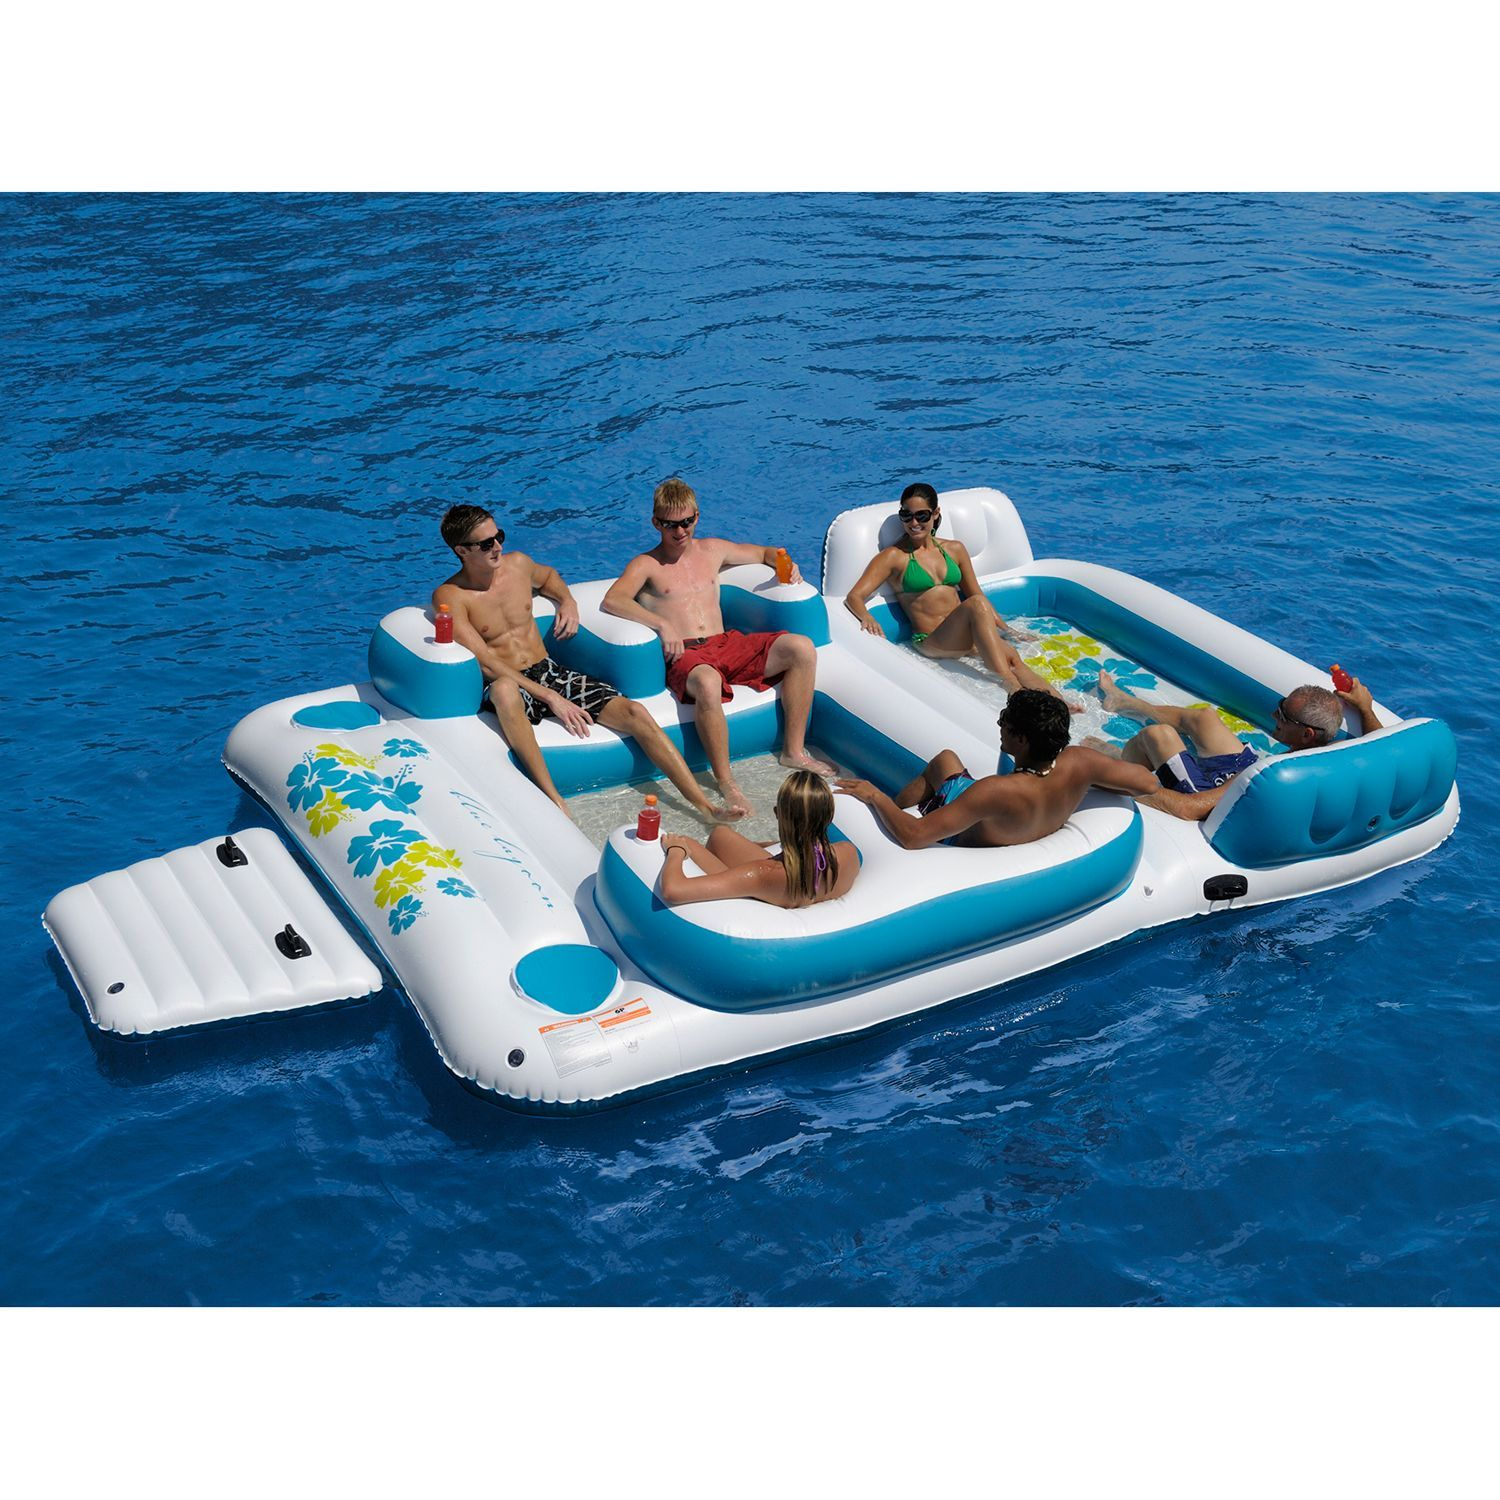 Blue Lagoon Pool Float Sams Club 140 For Floating The